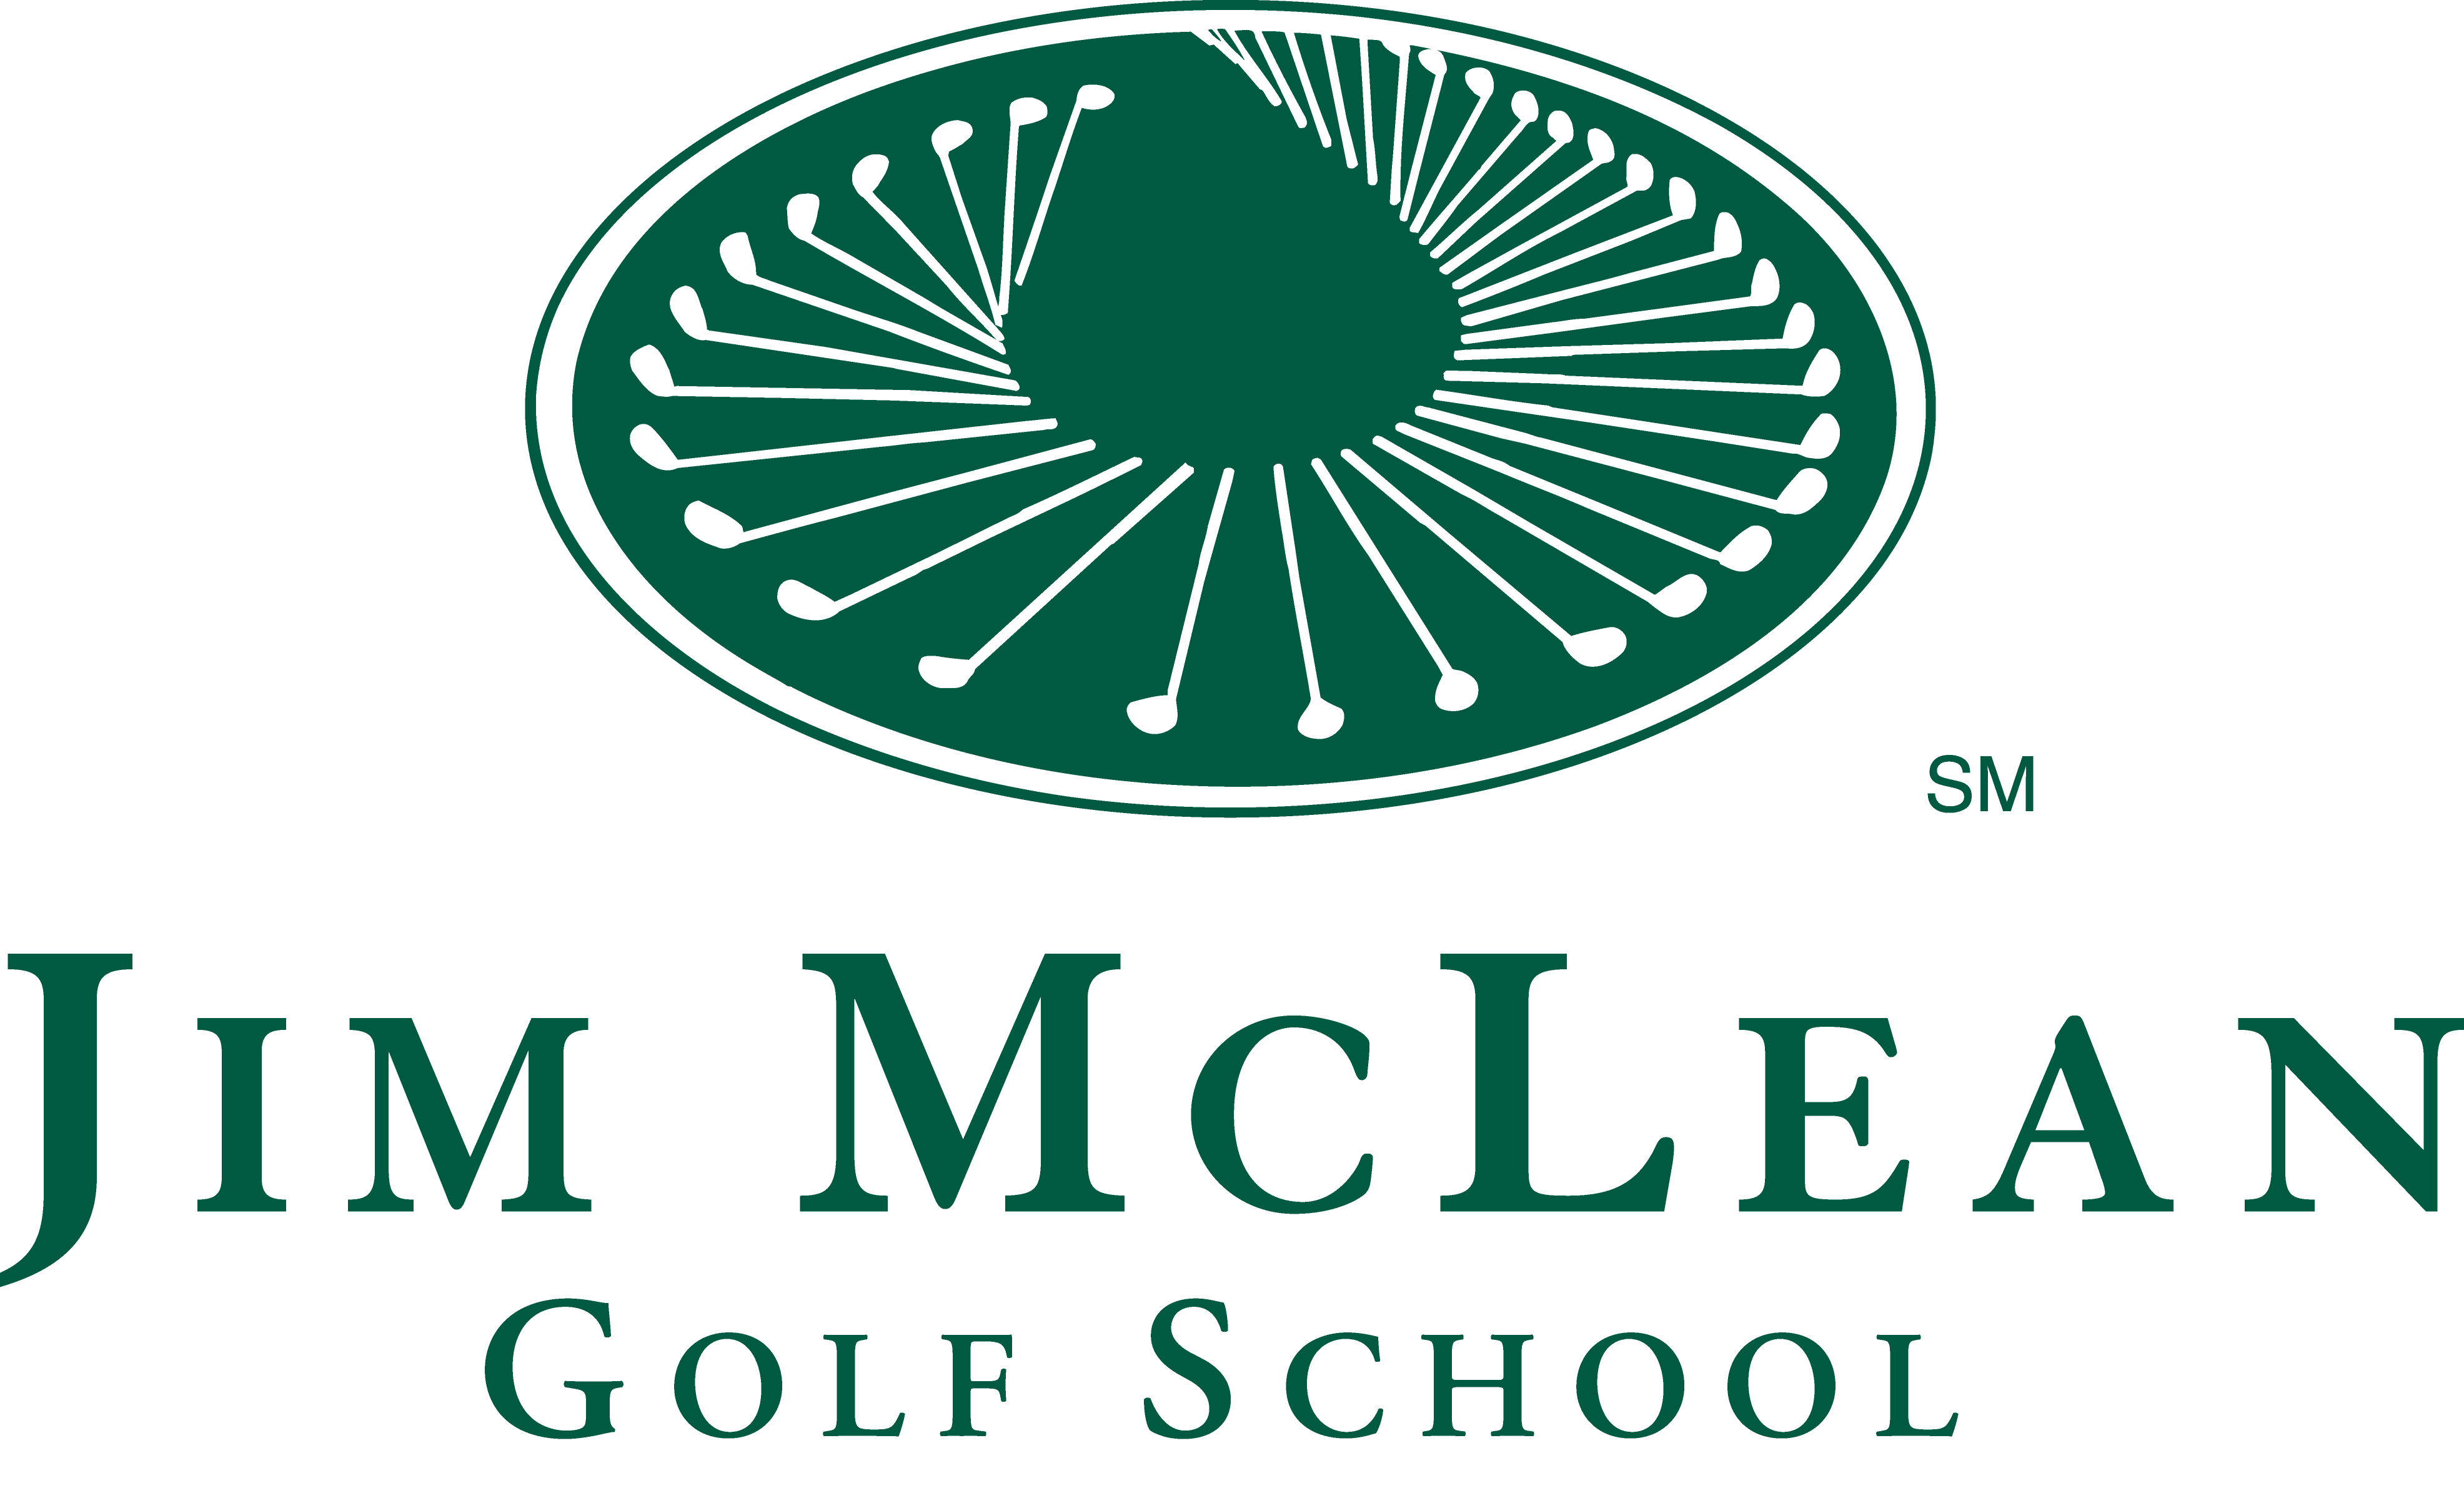 Jim McLean Golf School, a Doral Chamber of Commerce member.